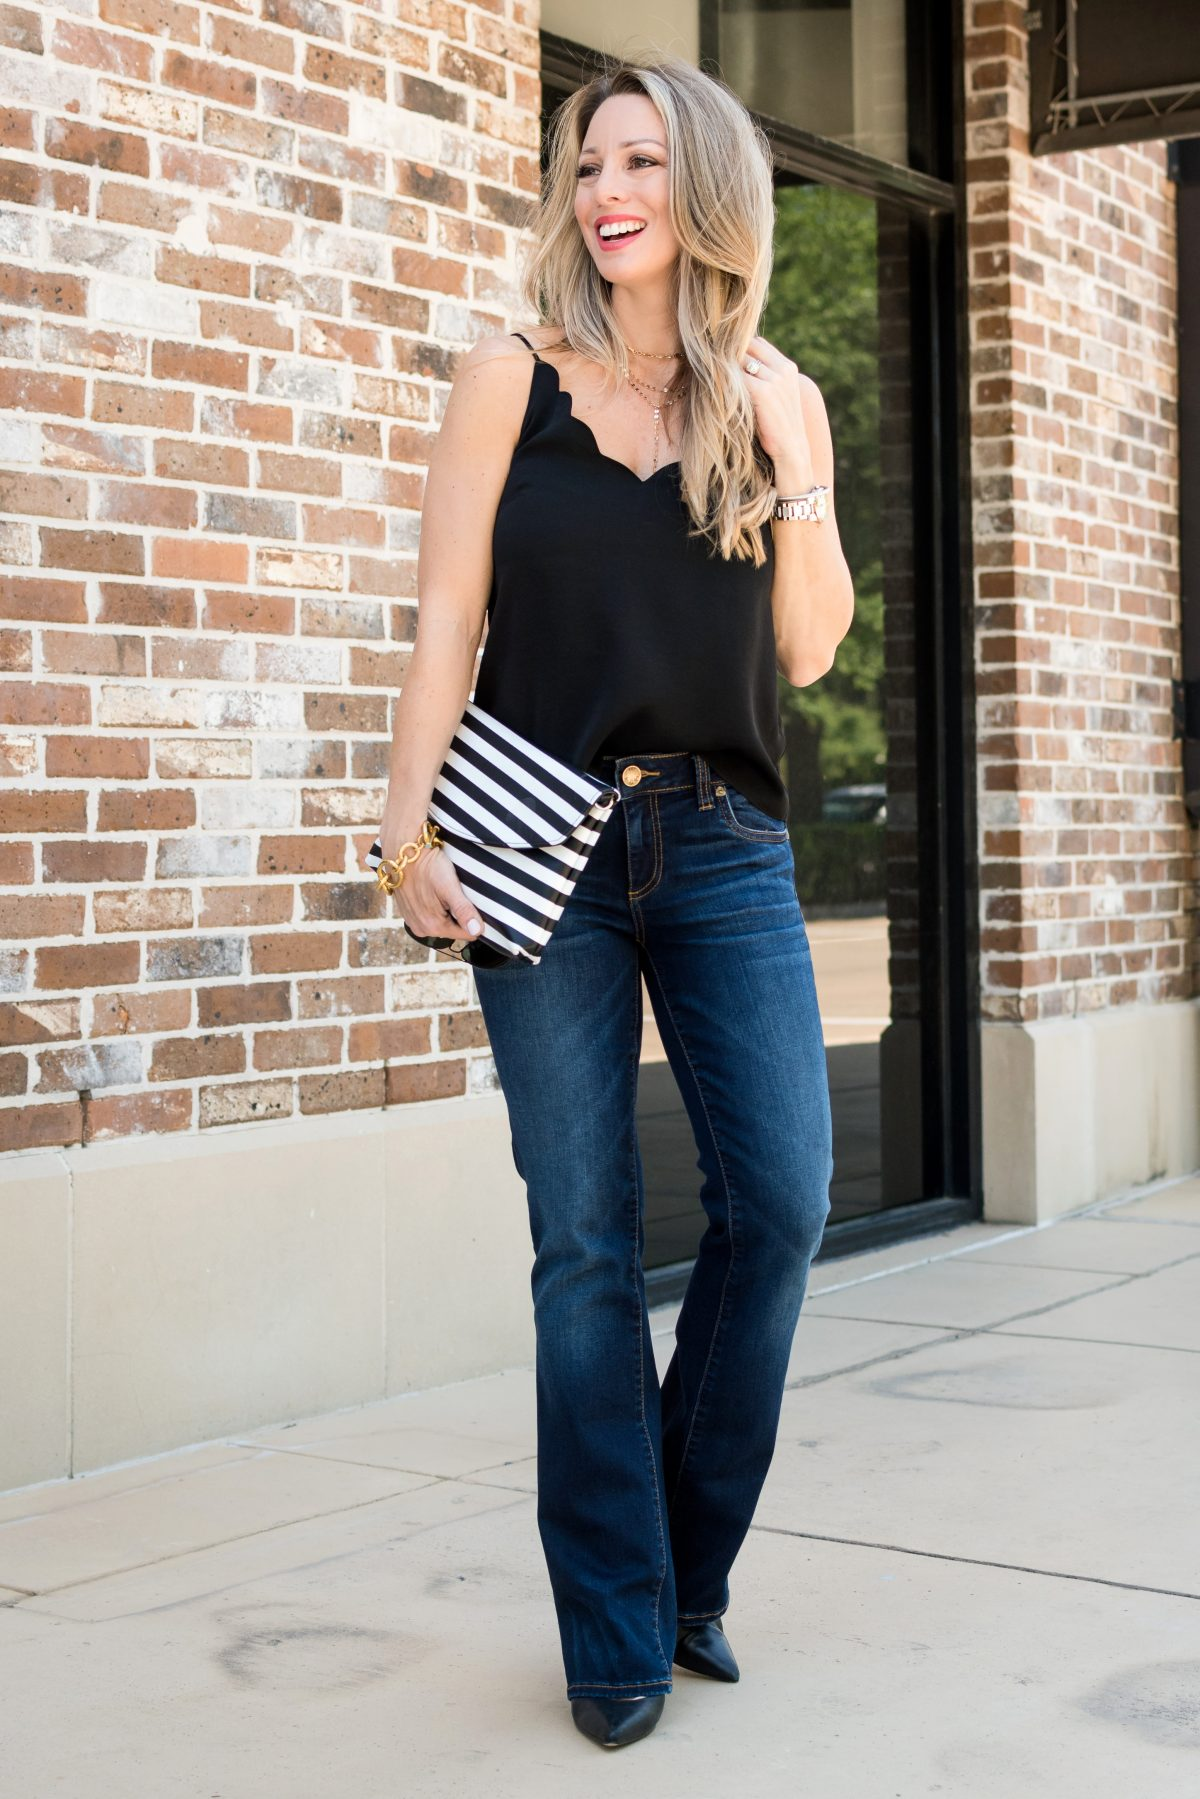 Black scallop camisole bootcut jeans